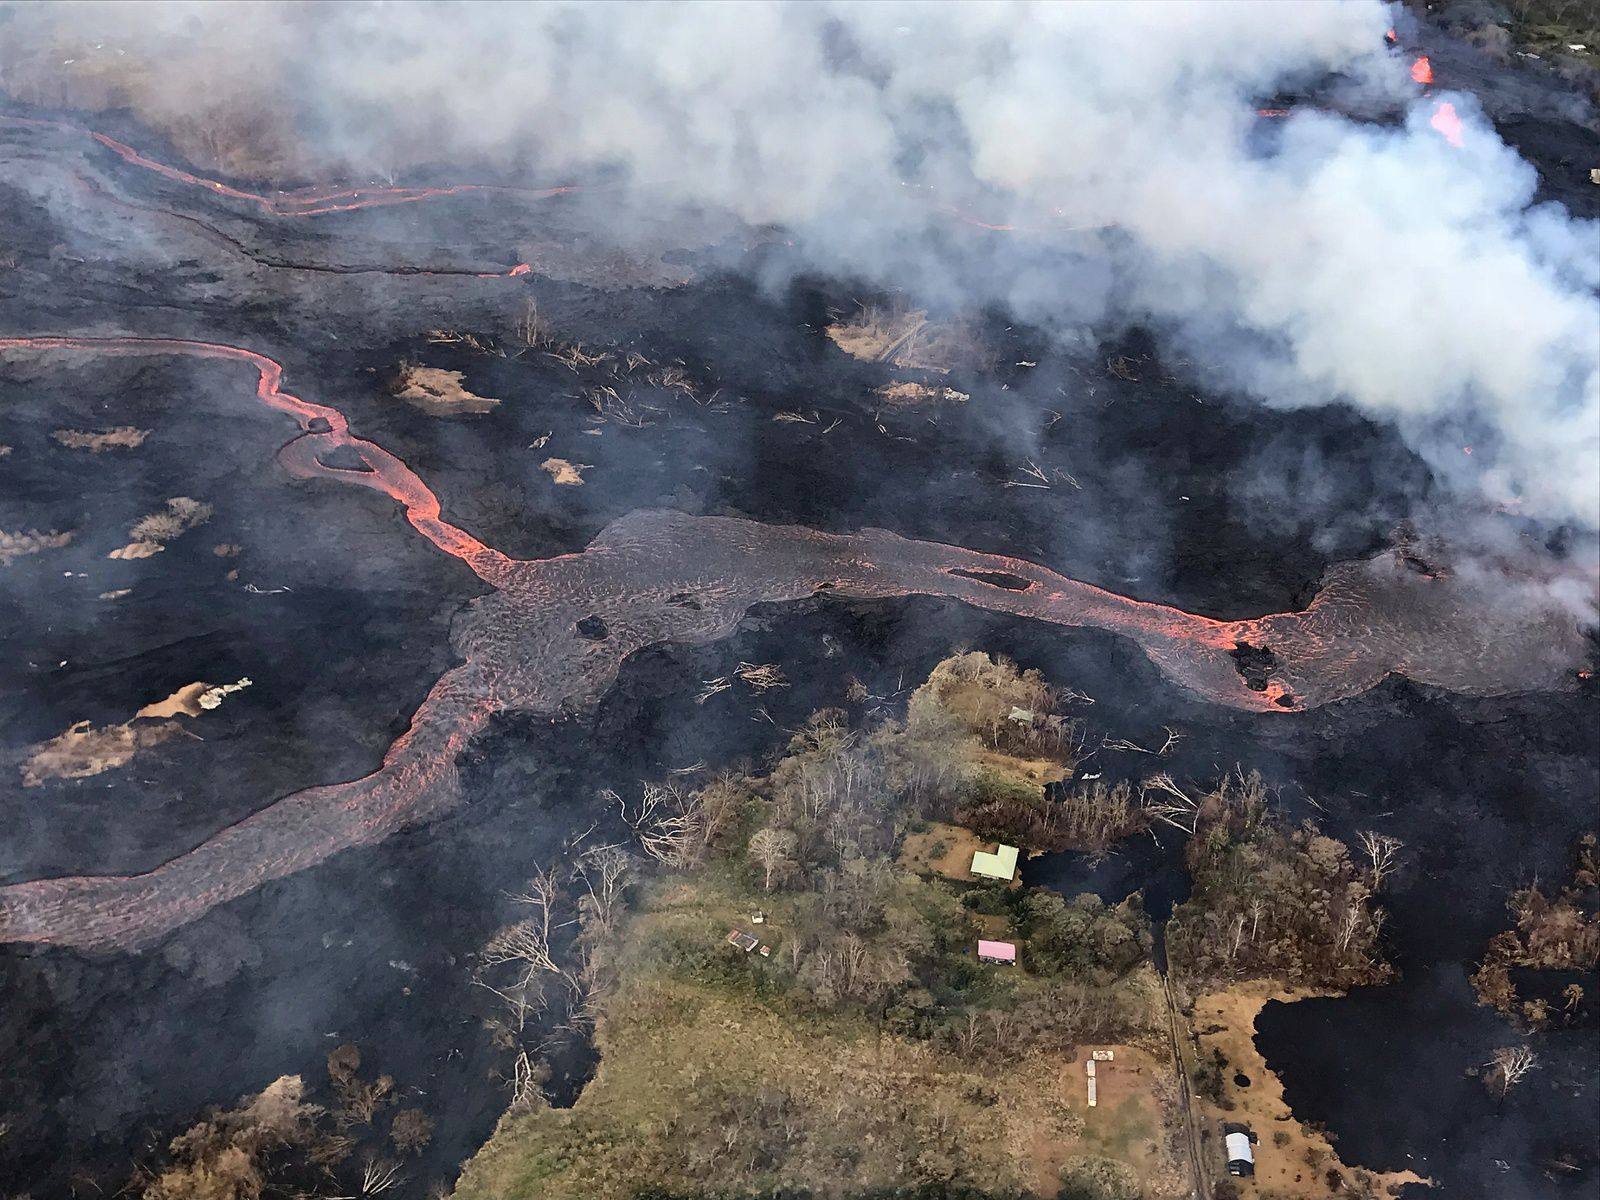 Kilauea East rift zone - 23.05.2018: lava flows from fissure 22 not visible in this HVO photo